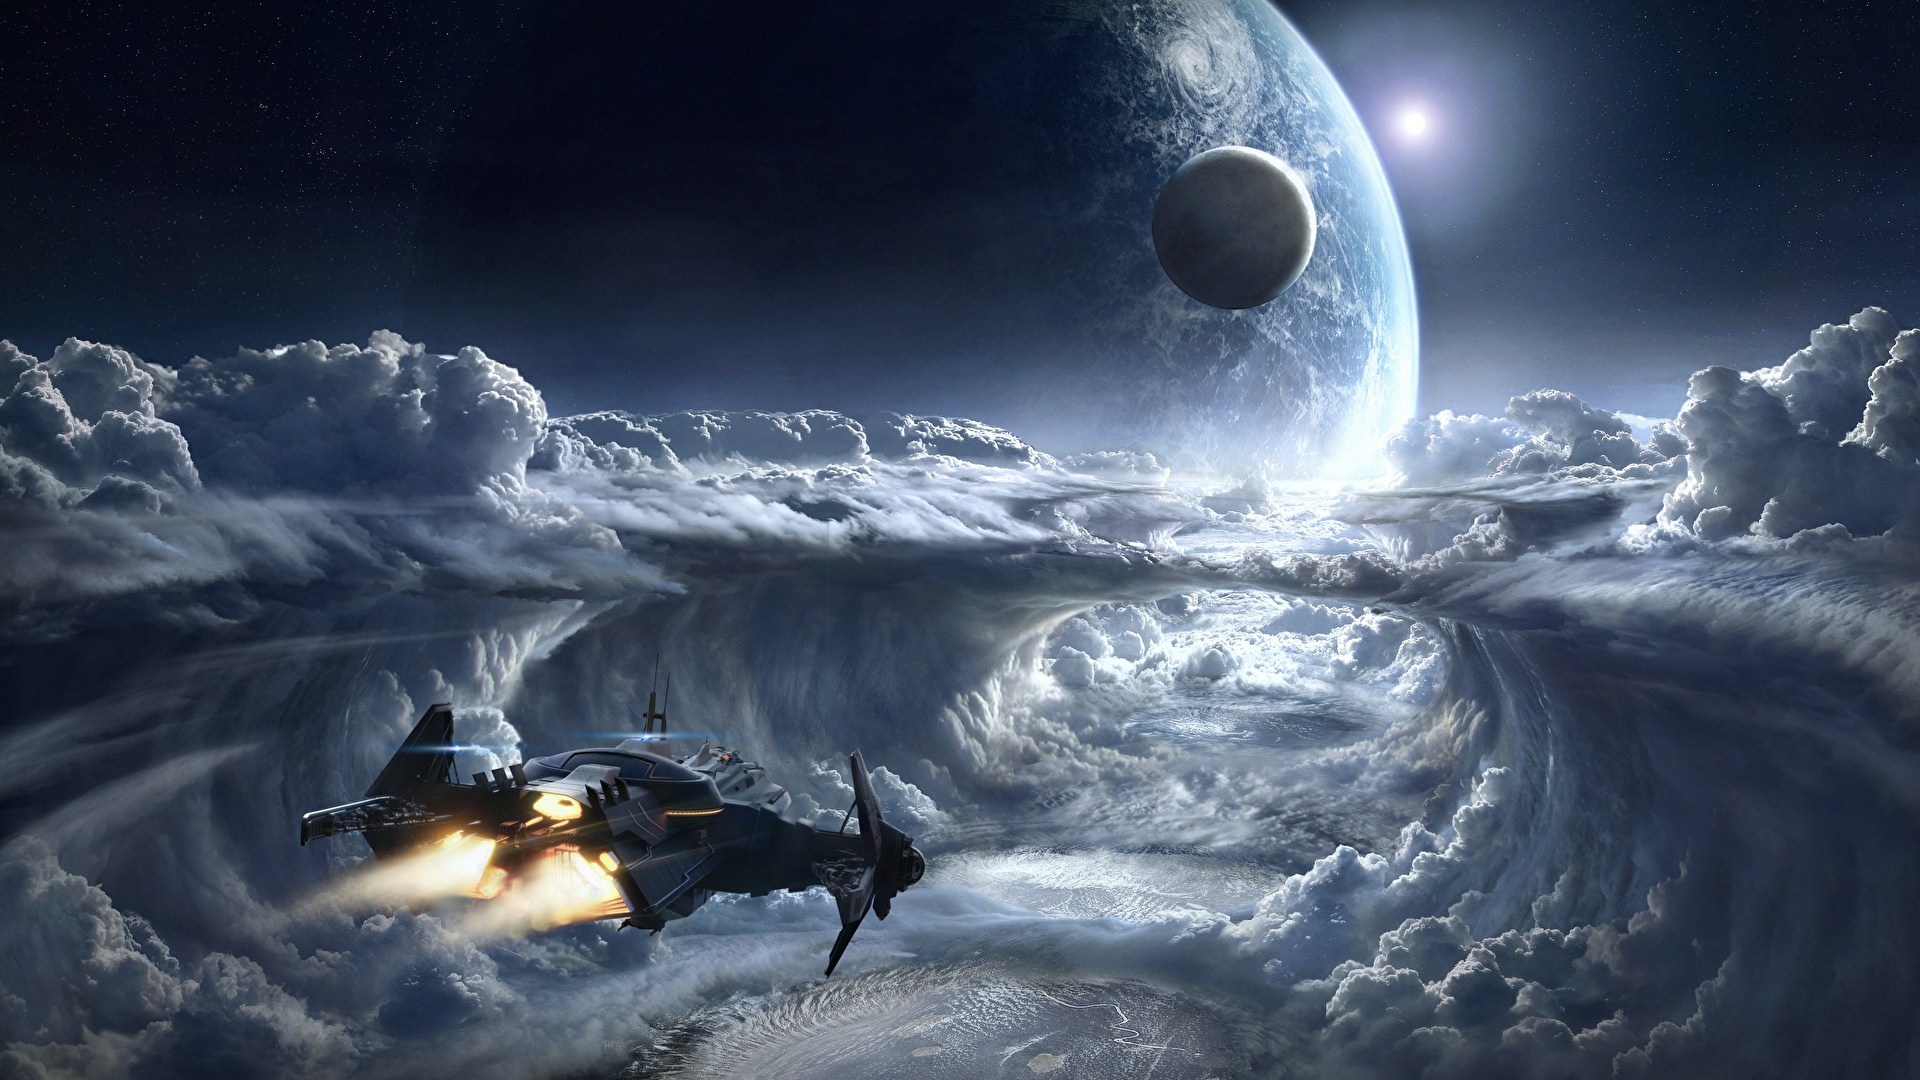 Wallpaper Star Citizen Planets Space Fantasy ship Games Clouds 1920x1080 planet Ships vdeo game